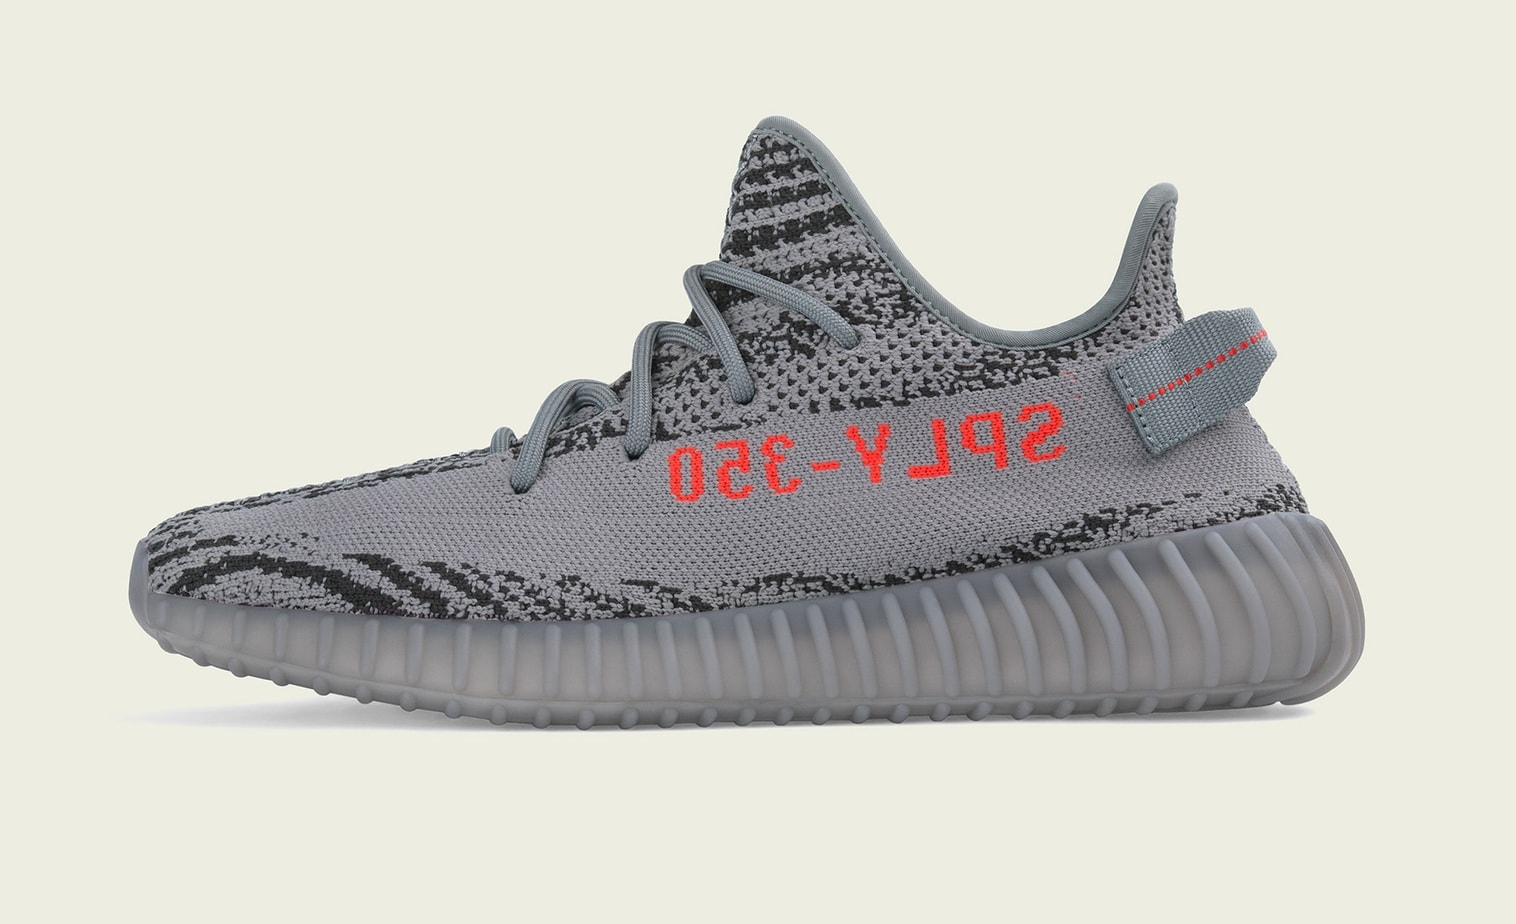 Exactly one week after the adidas Yeezy 350 Boost V2 Semi Frozen Yellow,  the adidas Yeezy 350 Boost V2 Beluga 2.0 is set to release Saturday,  November 25th.